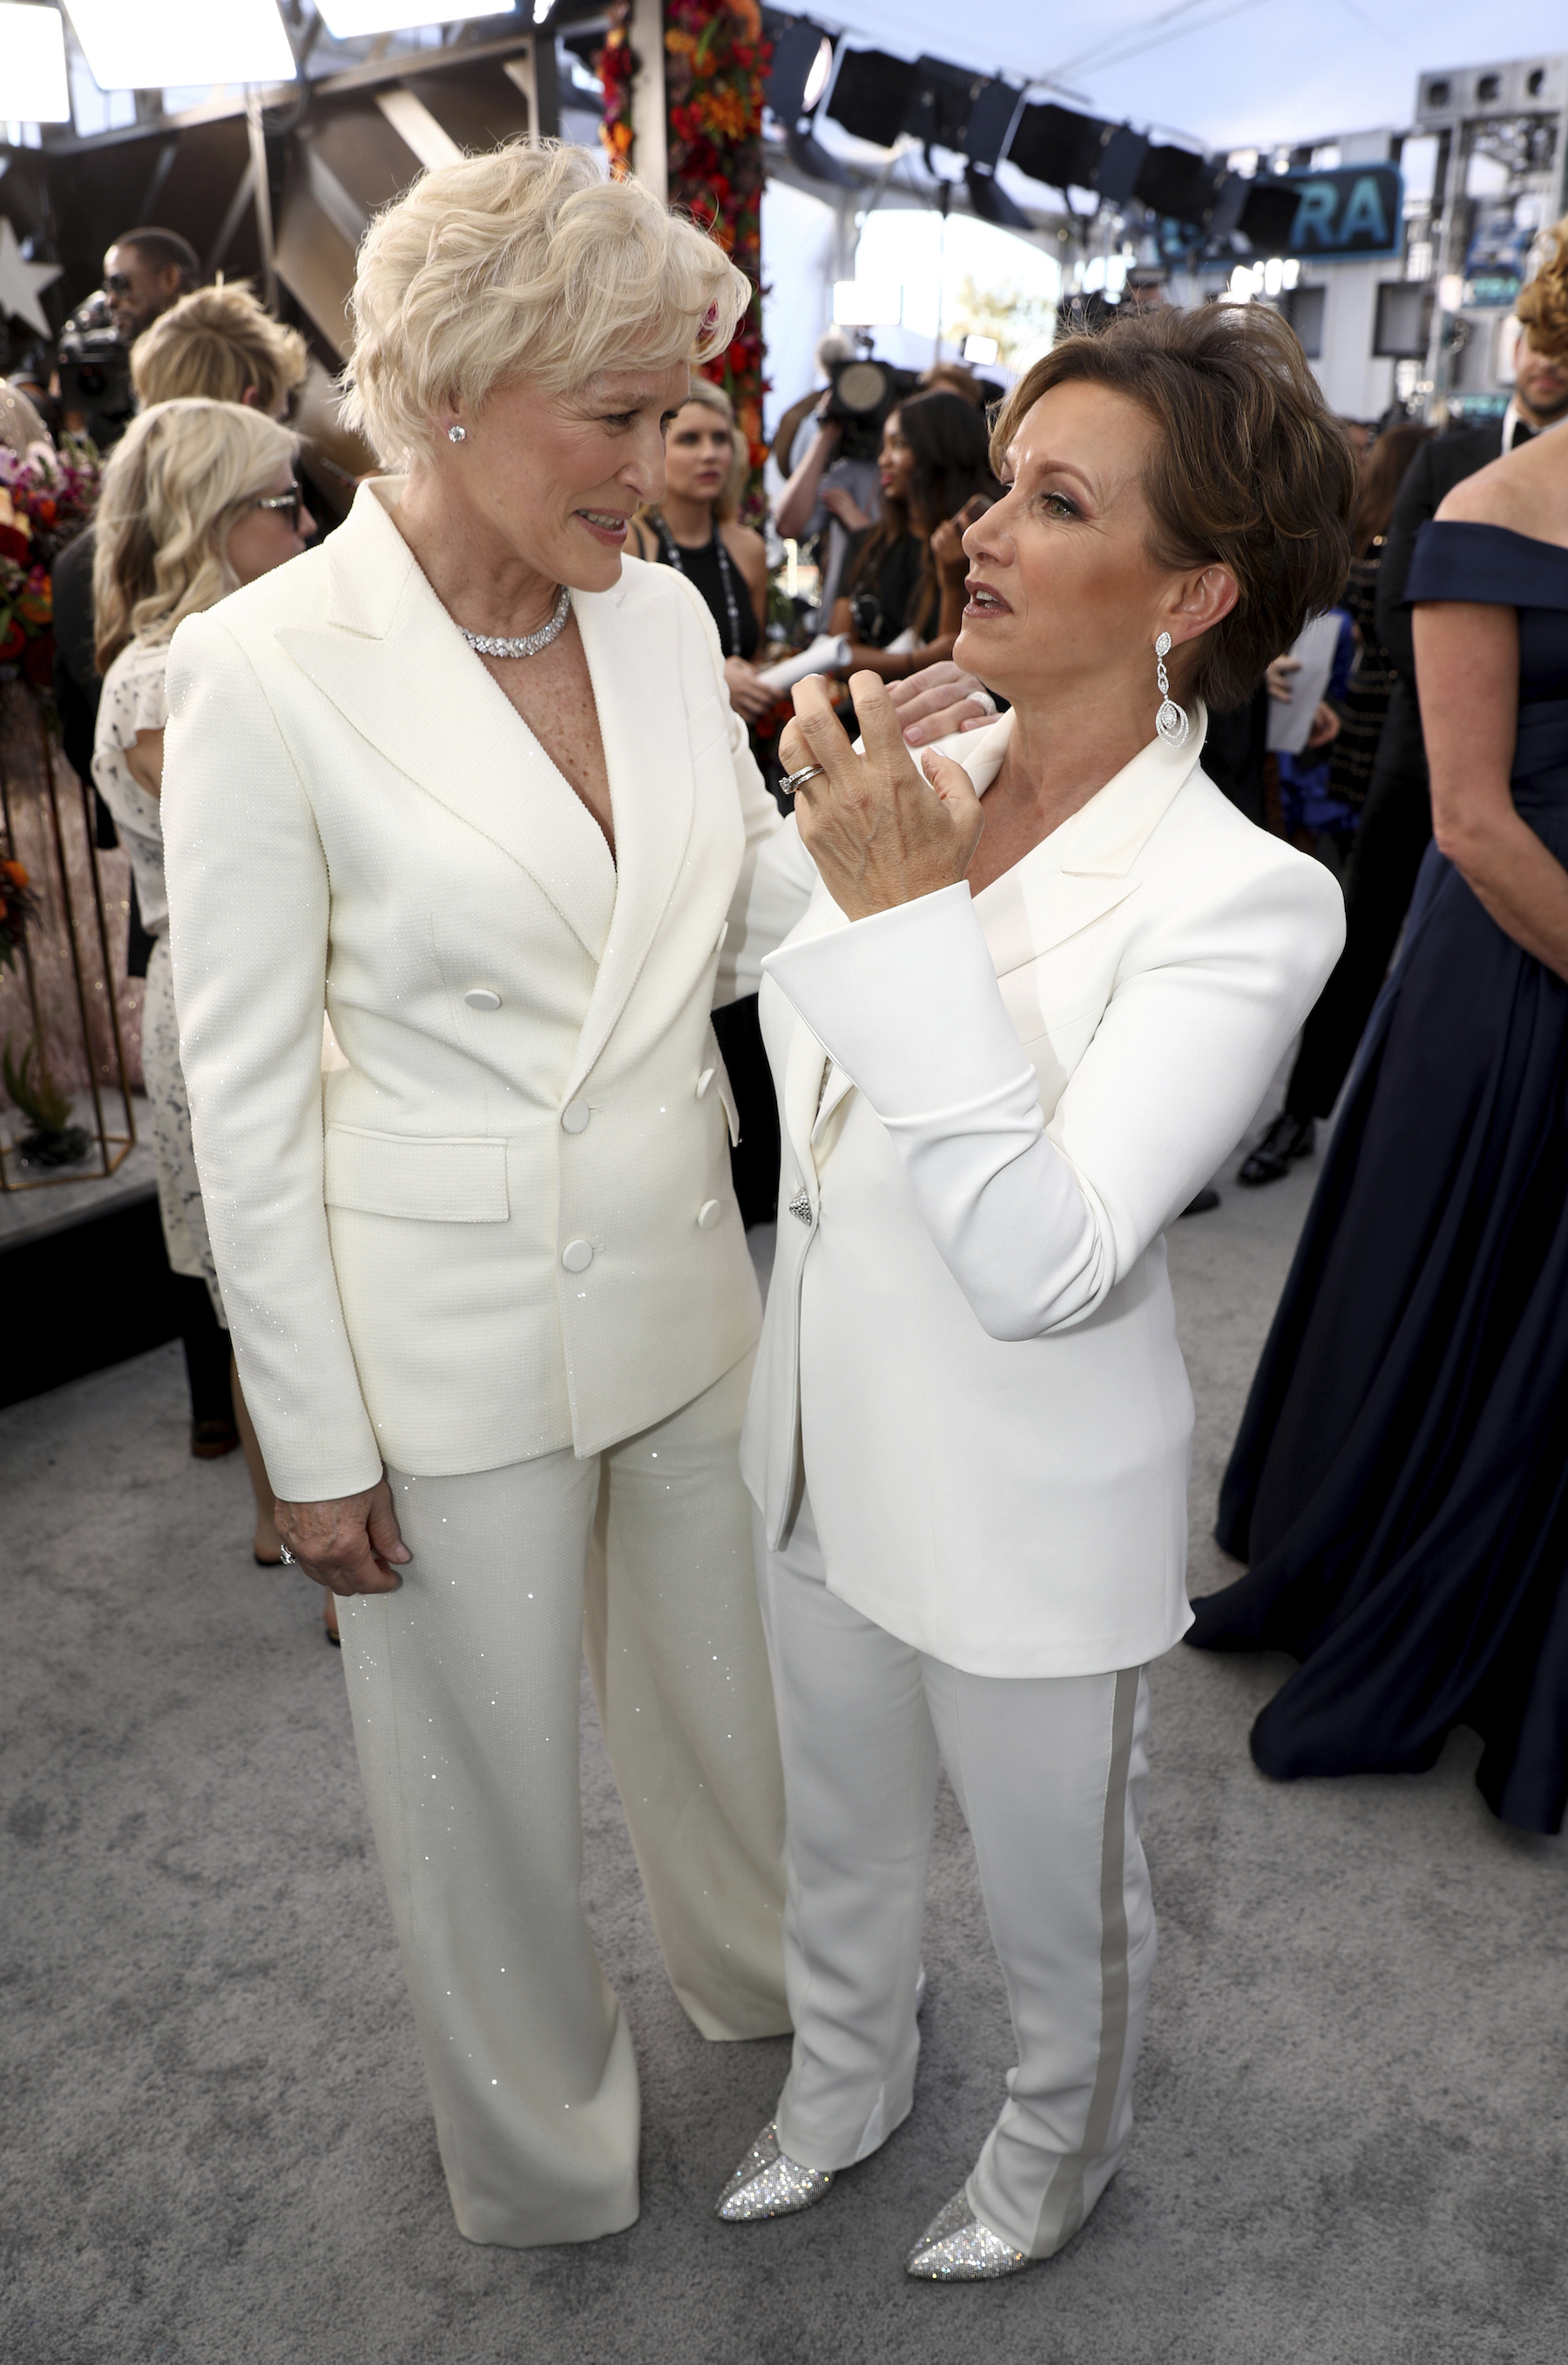 "<div class=""meta image-caption""><div class=""origin-logo origin-image ap""><span>AP</span></div><span class=""caption-text"">Glenn Close, left, and Gabrielle Carteris, executive vice president of SAG-AFTRA arrive at the 25th annual Screen Actors Guild Awards at the Shrine Auditorium & Expo Hall. (Matt Sayles/Invision/AP)</span></div>"